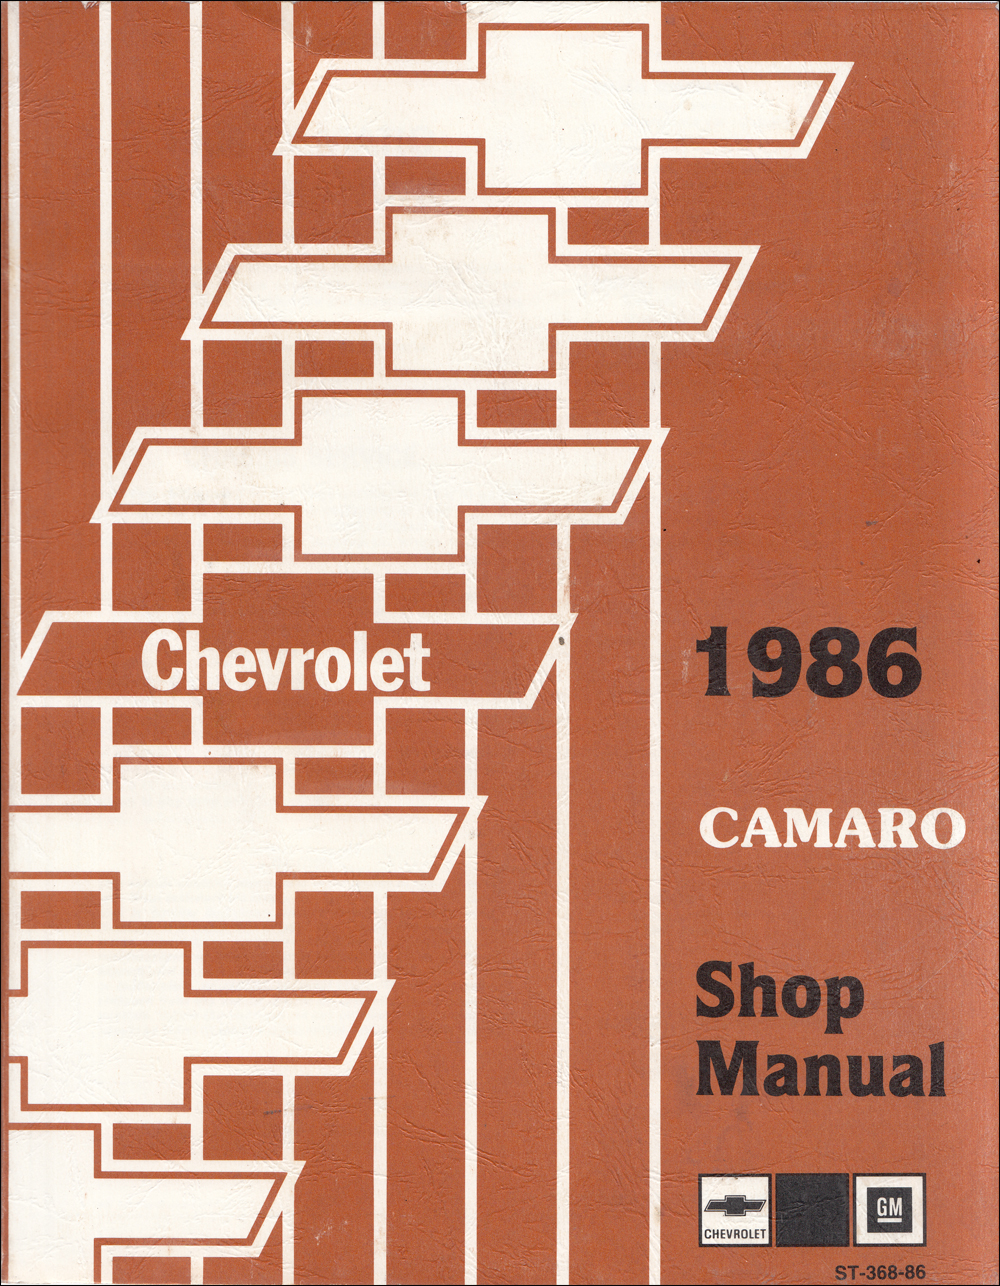 1986 Chevy Camaro Shop Manual Original